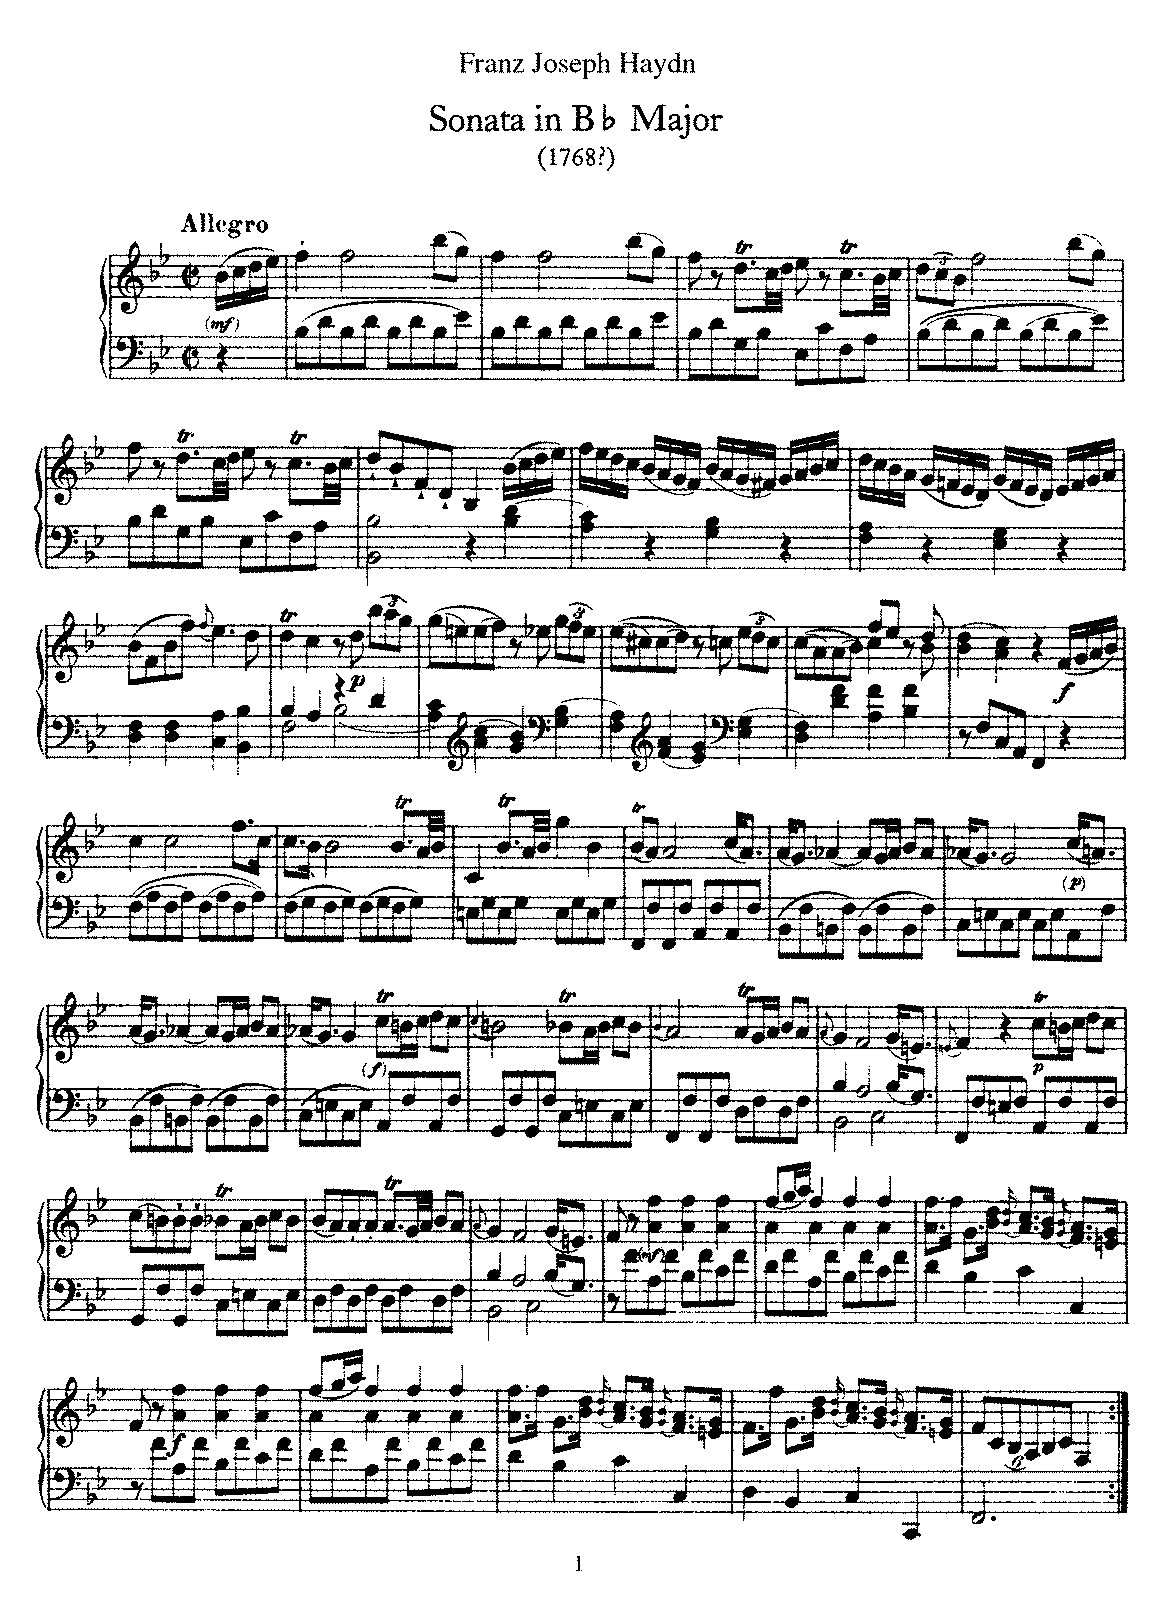 Haydn - Piano Sonata No 17 in Bb.pdf